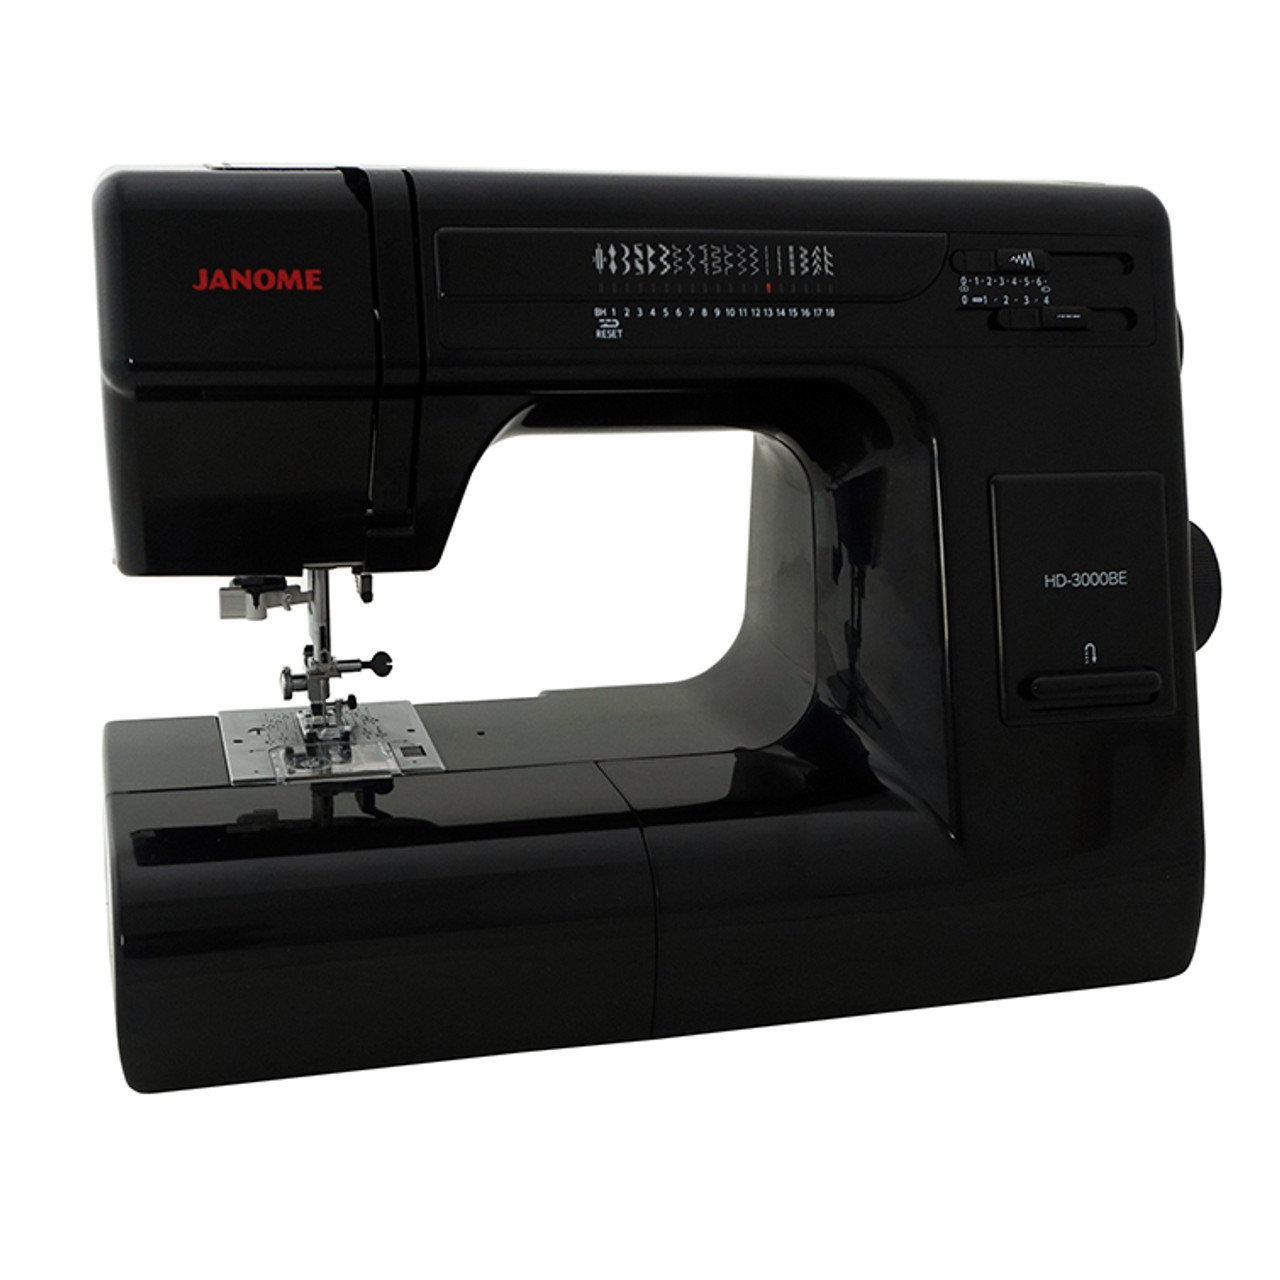 Janome Sewing Machine Arrow Sewing Cabinet Combo 40 404040 FREE Beauteous Arrow Sewing Machine